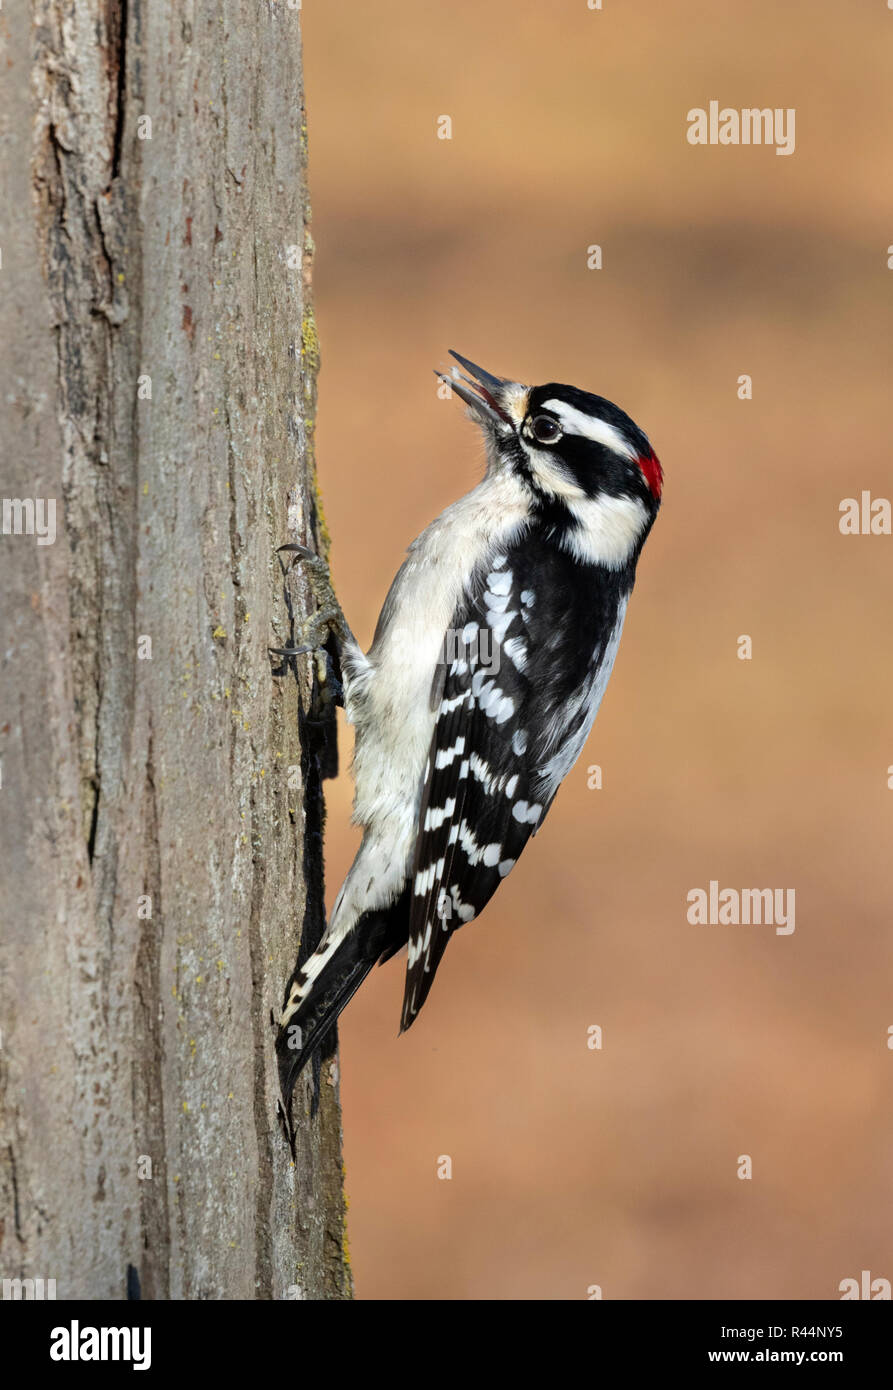 Downy woodpecker (Dryobates pubescens) male feeding on a tree trunk on the background of fallen leaves, Iowa, USA - Stock Image